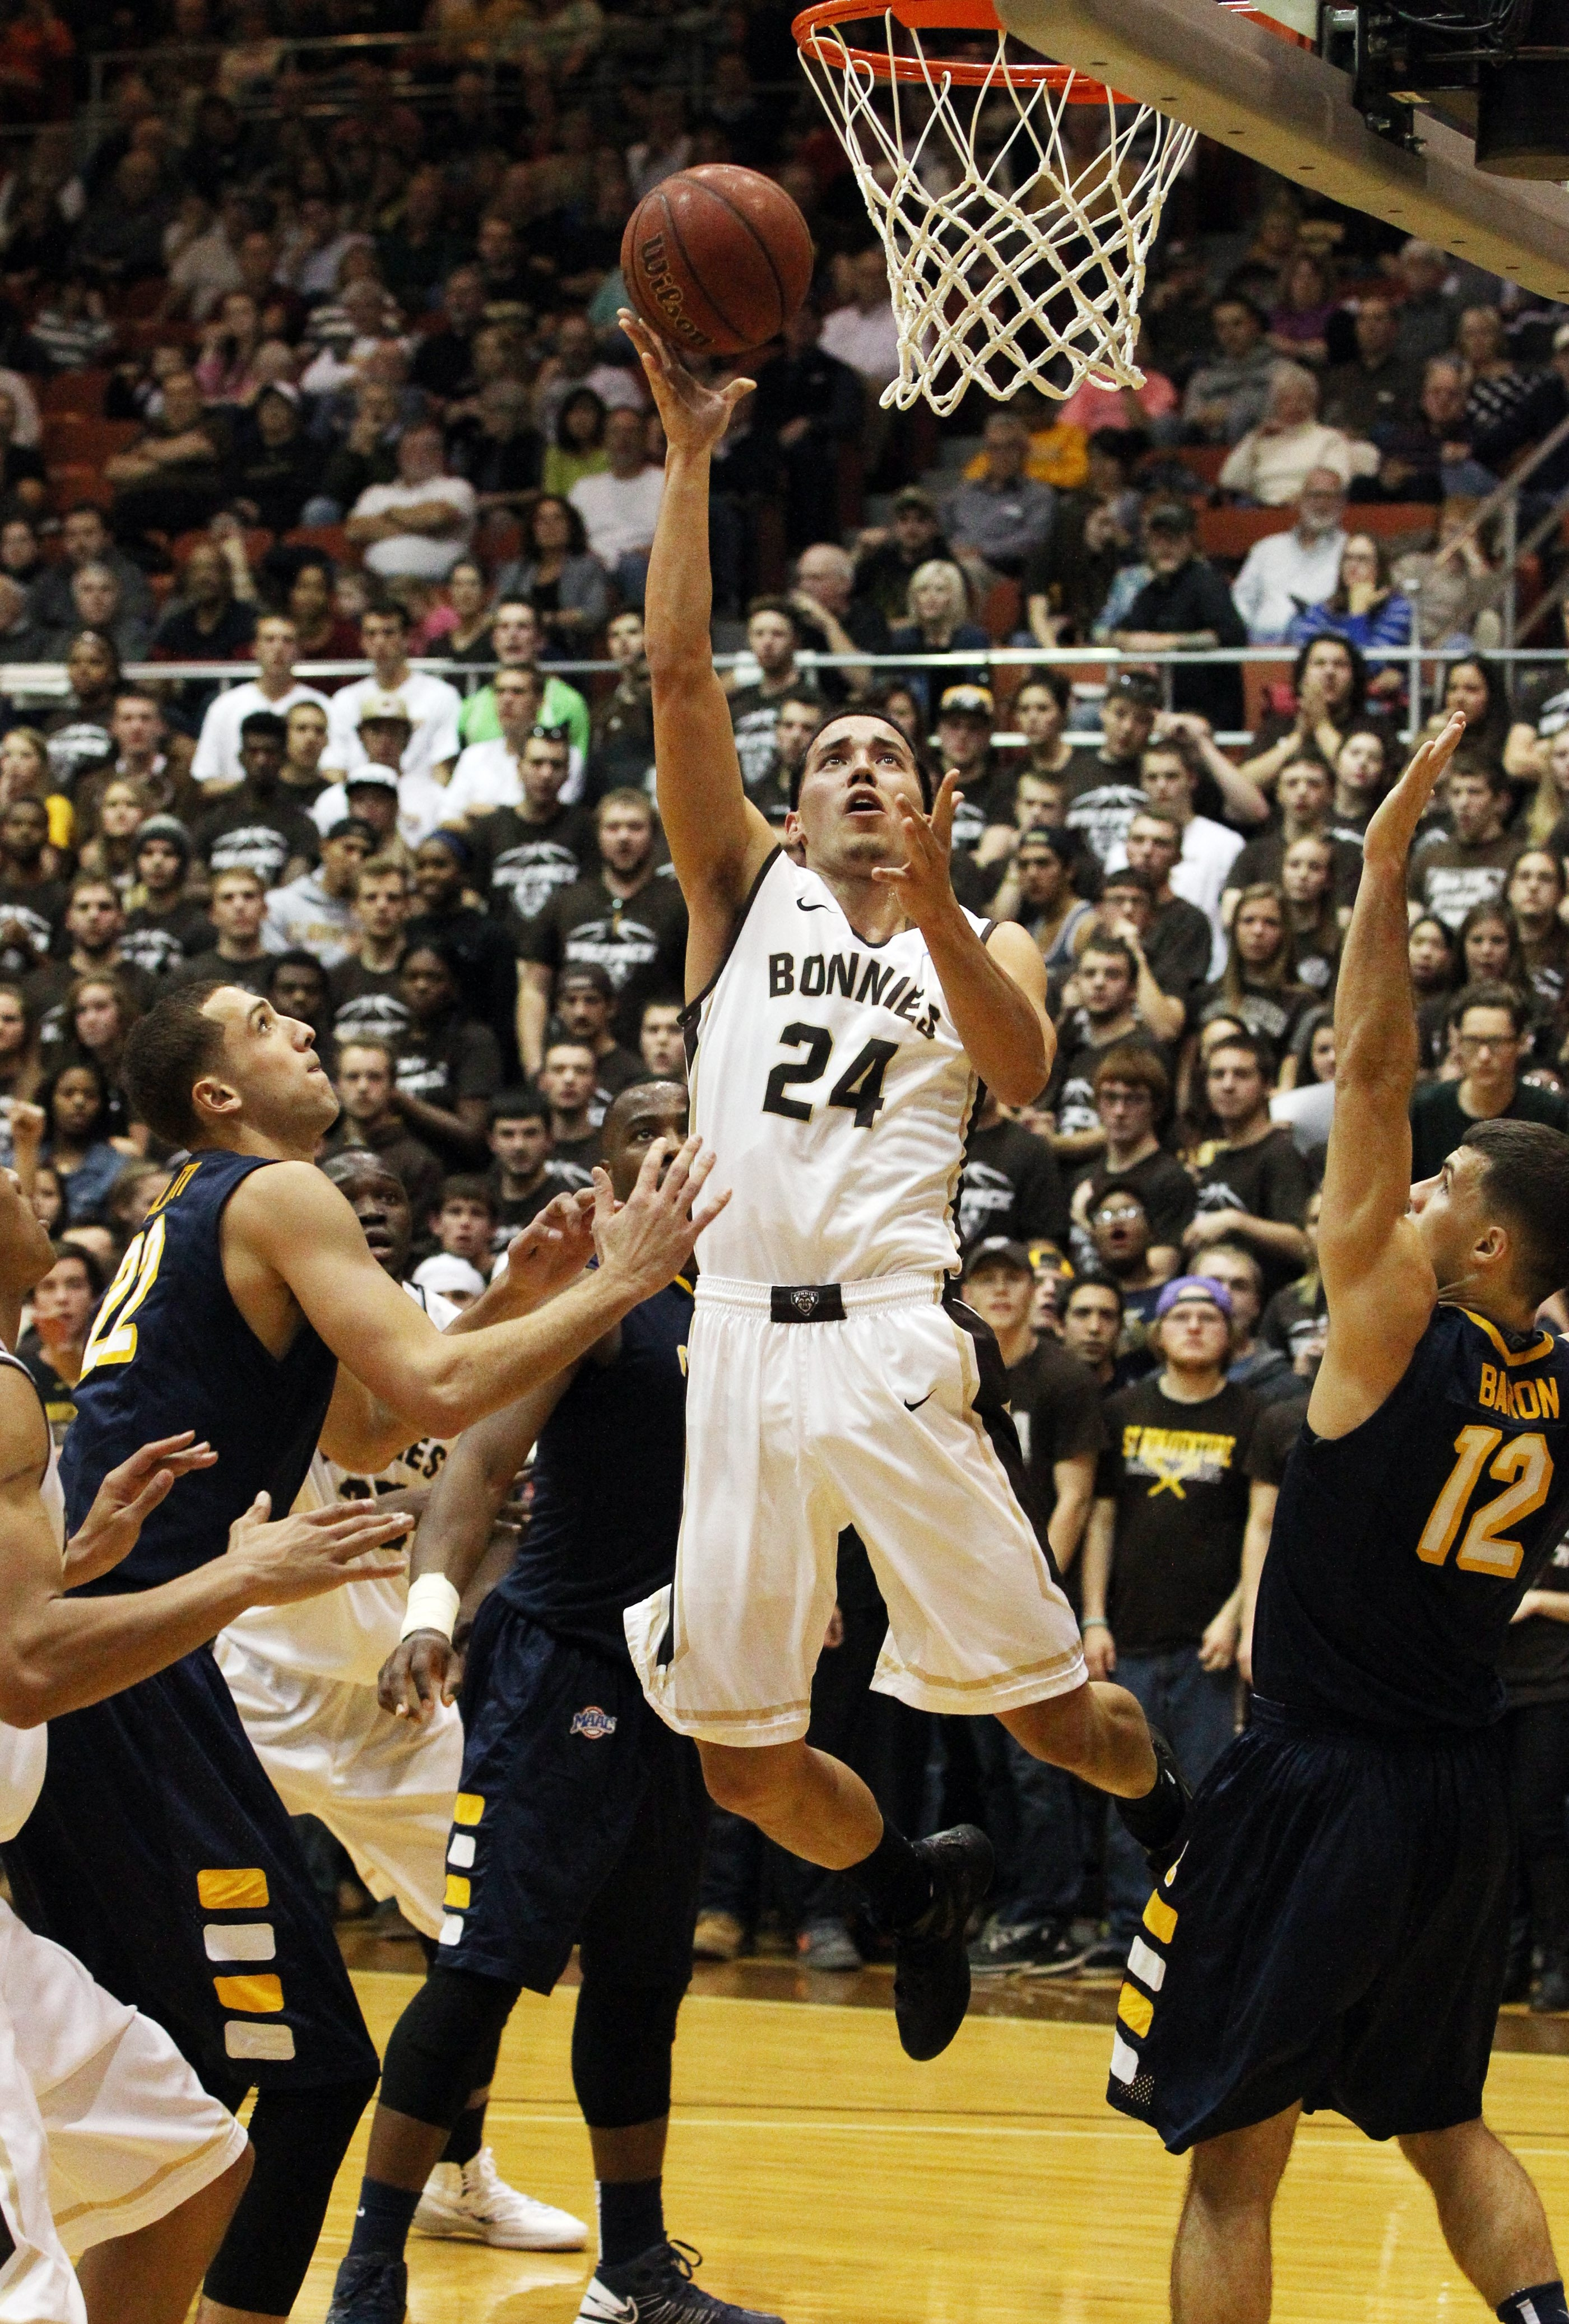 Bonnies guard Matthew Wright scores two points over Golden Griffins guard Billy Baron as St. Bonaventure secured its first 3-0 start in 13 years with the win over Canisius.